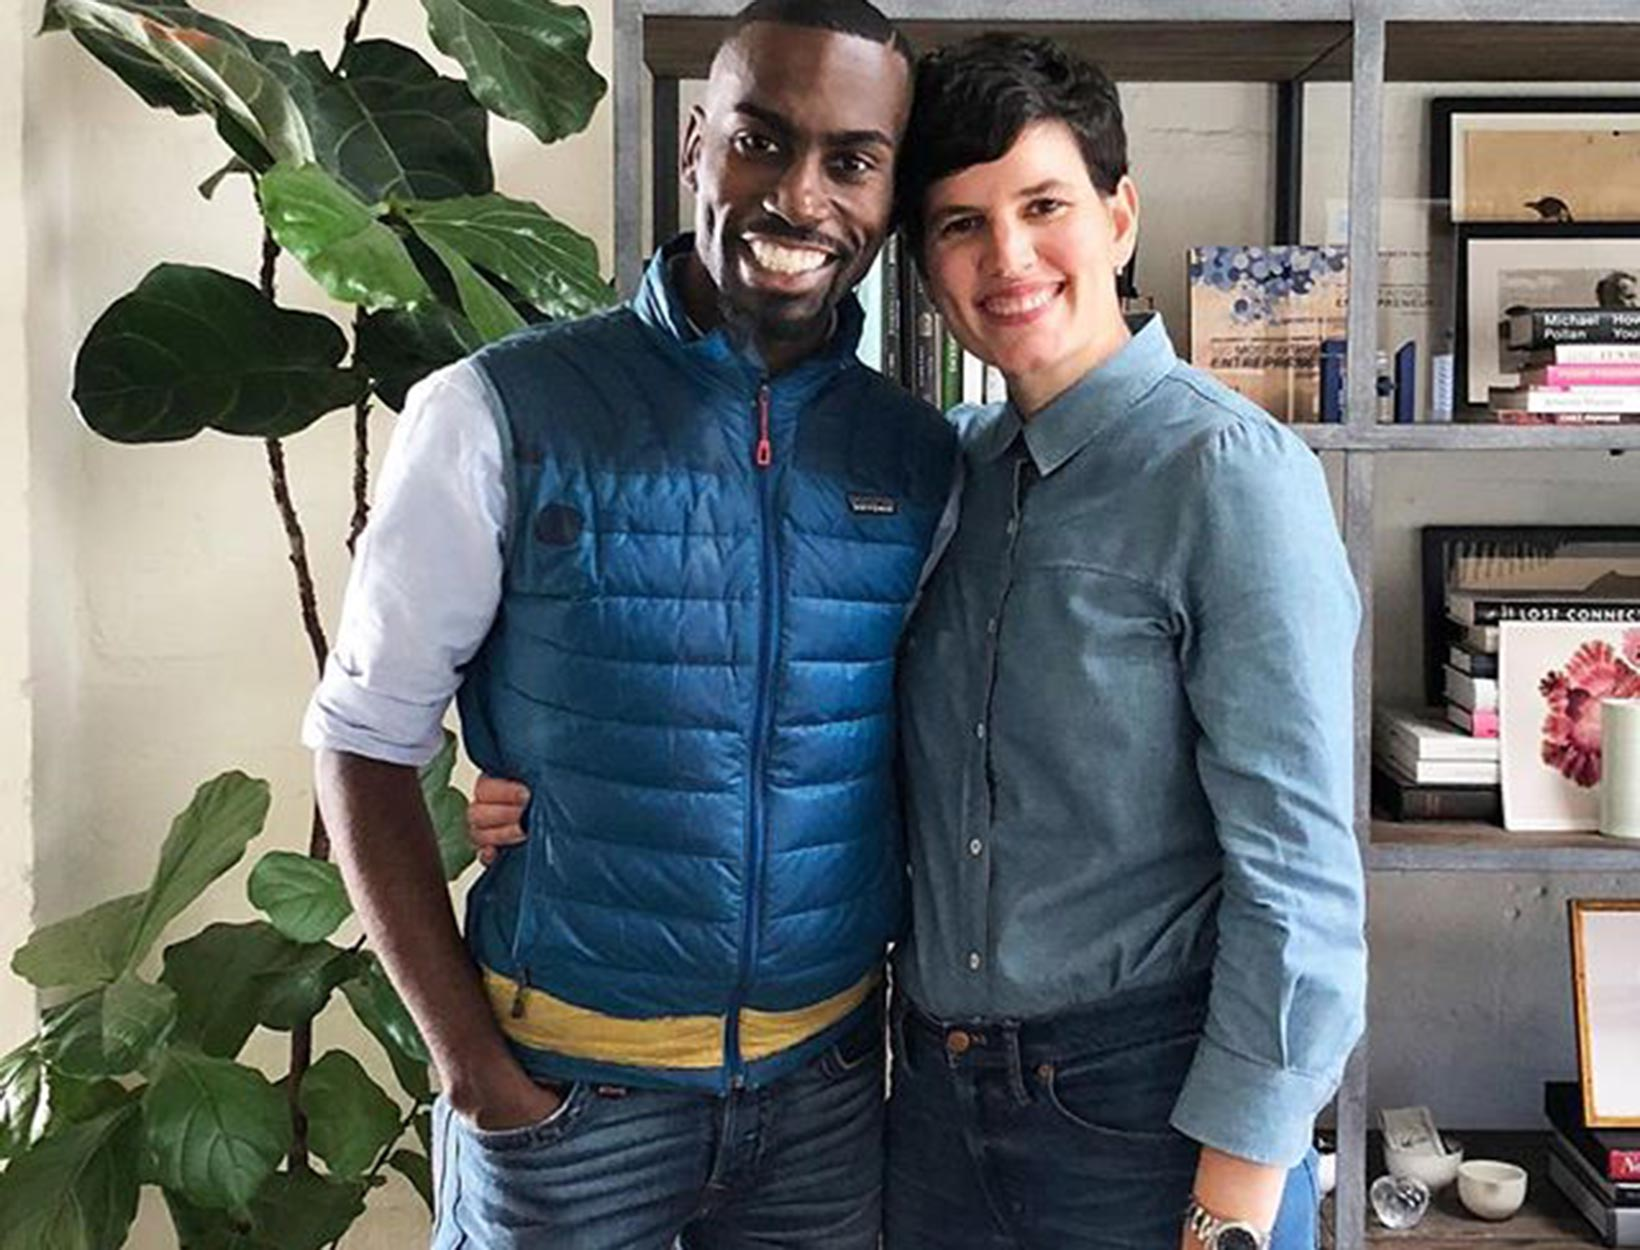 DeRay Mckesson: How to Move from Ally to Accomplice